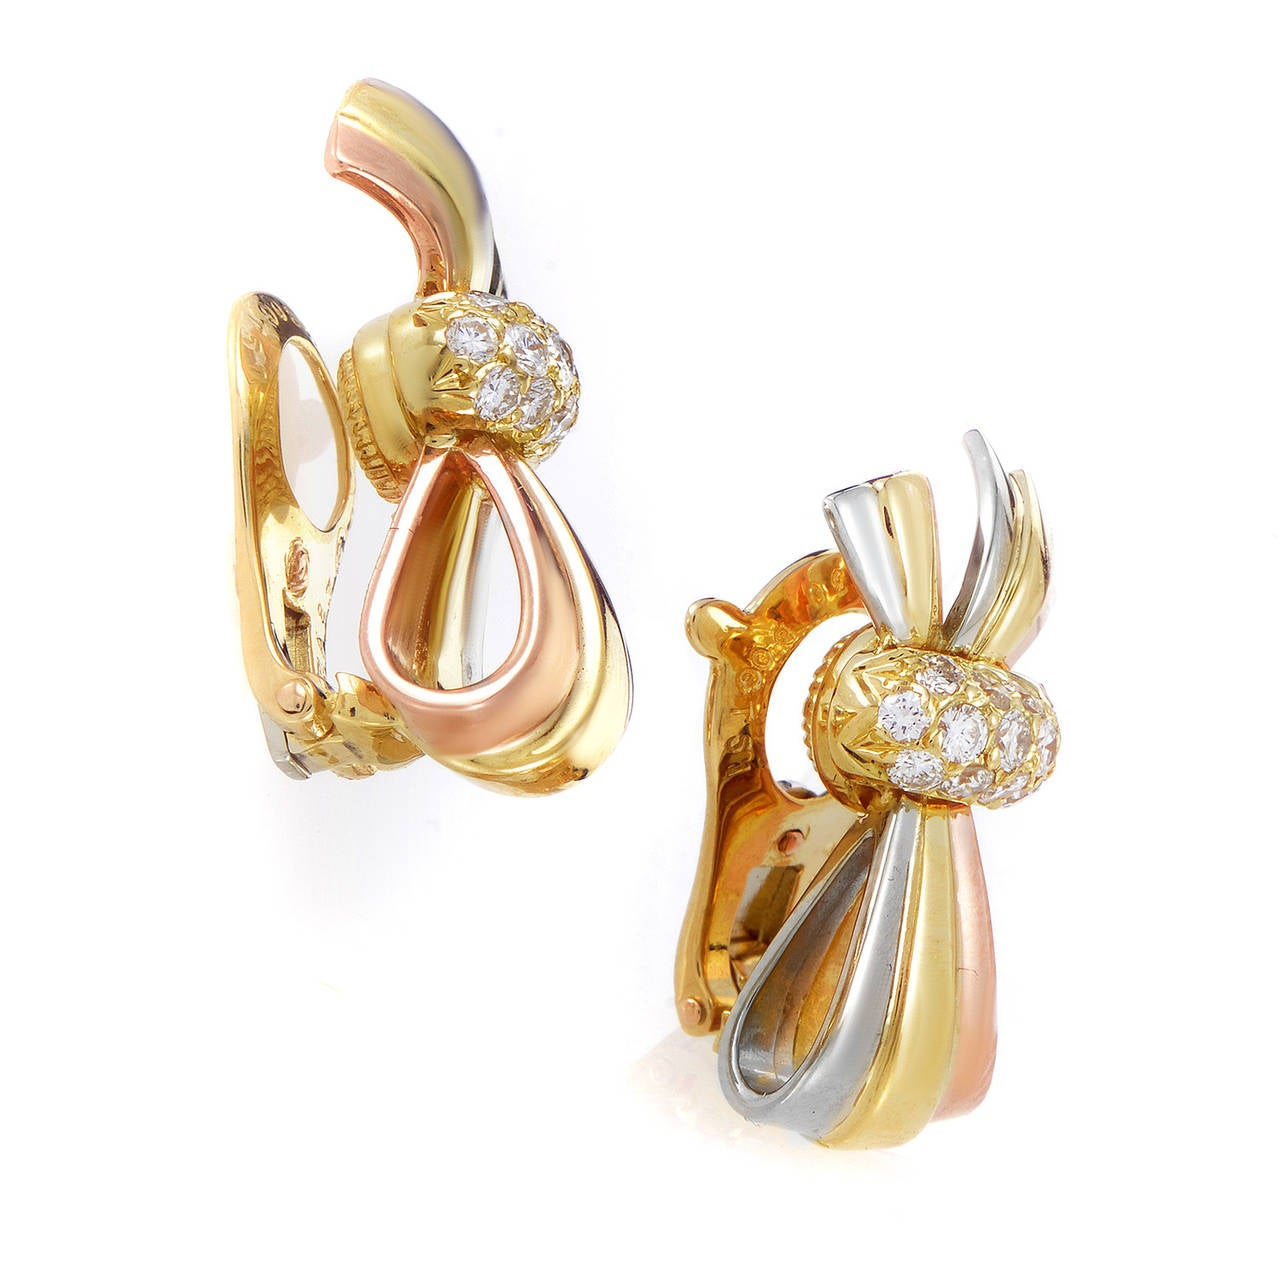 Van Cleef & Arpels Diamond Tri-Tone Gold Bow Clip-On Earrings 2